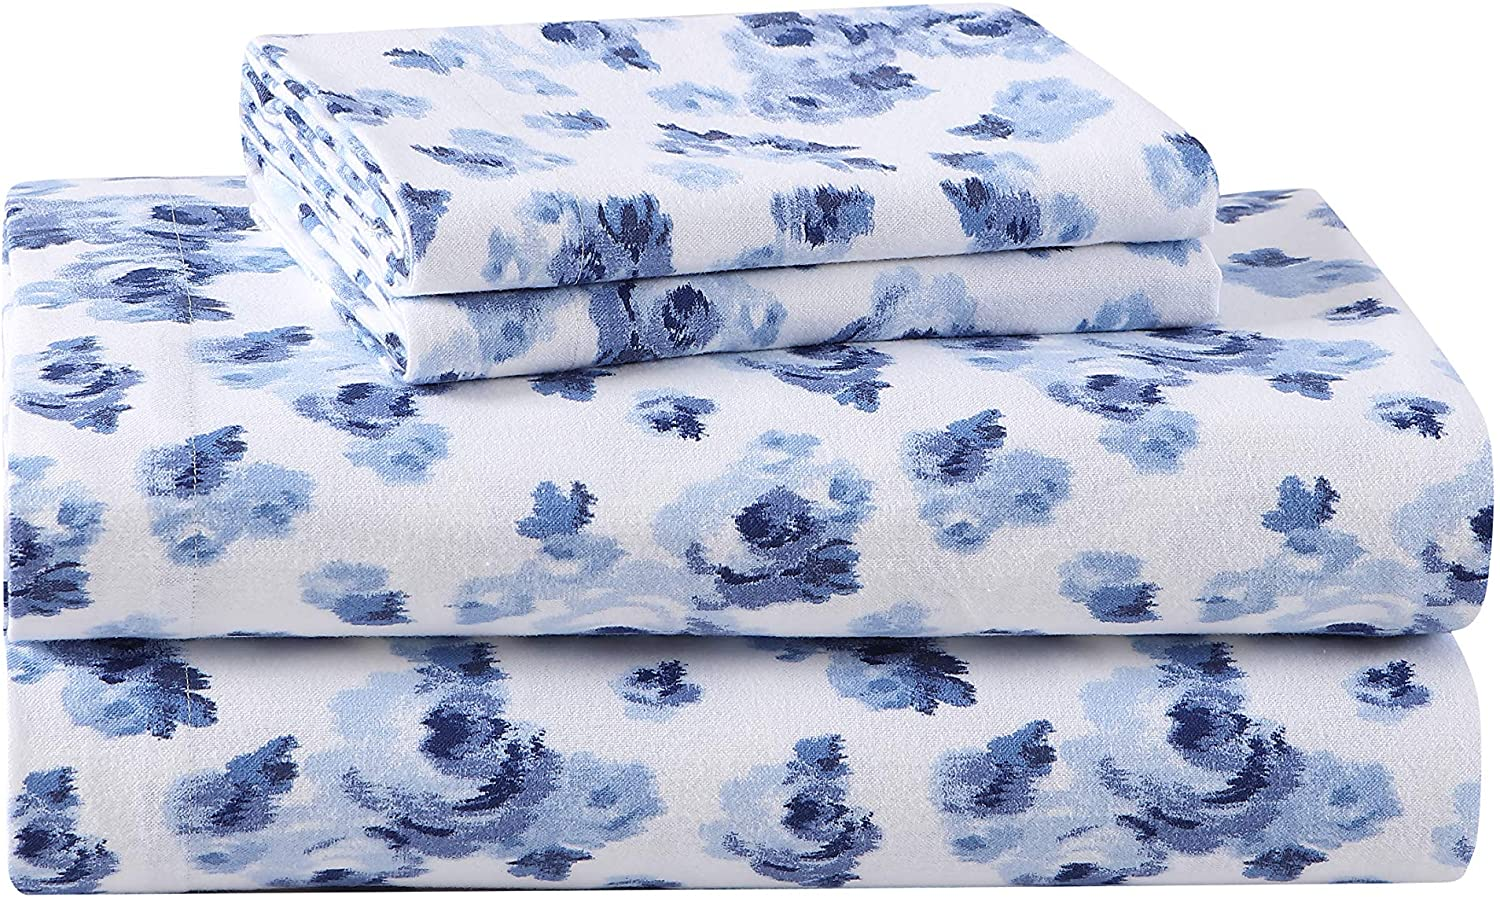 Laura Ashley Home - Flannel Collection - Sheet Set - 100% Cotton, Ultra-Soft Brushed Flannel, Pre-Shrunk & Anti-Pill, Machine Washable Easy Care, Twin, Emelisa